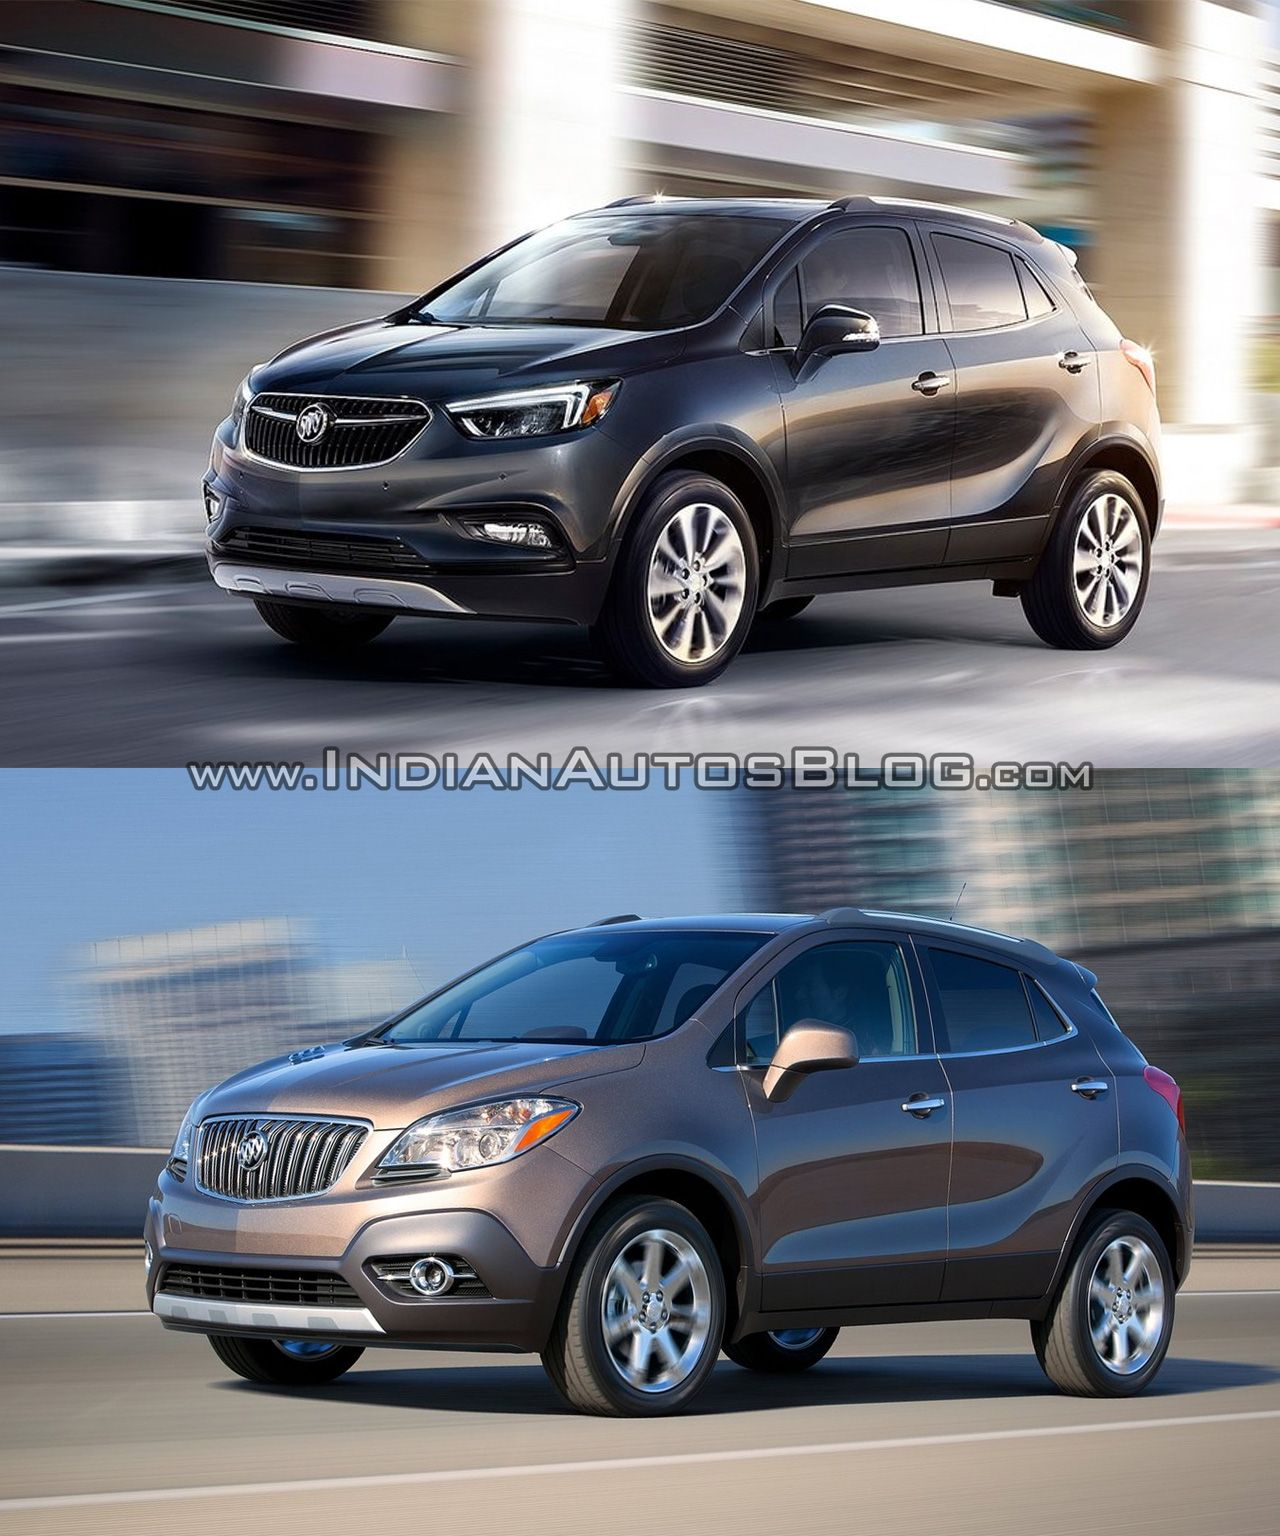 Used Buick Encore: 2017 Buick Encore Vs 2013 Buick Encore - Old Vs New